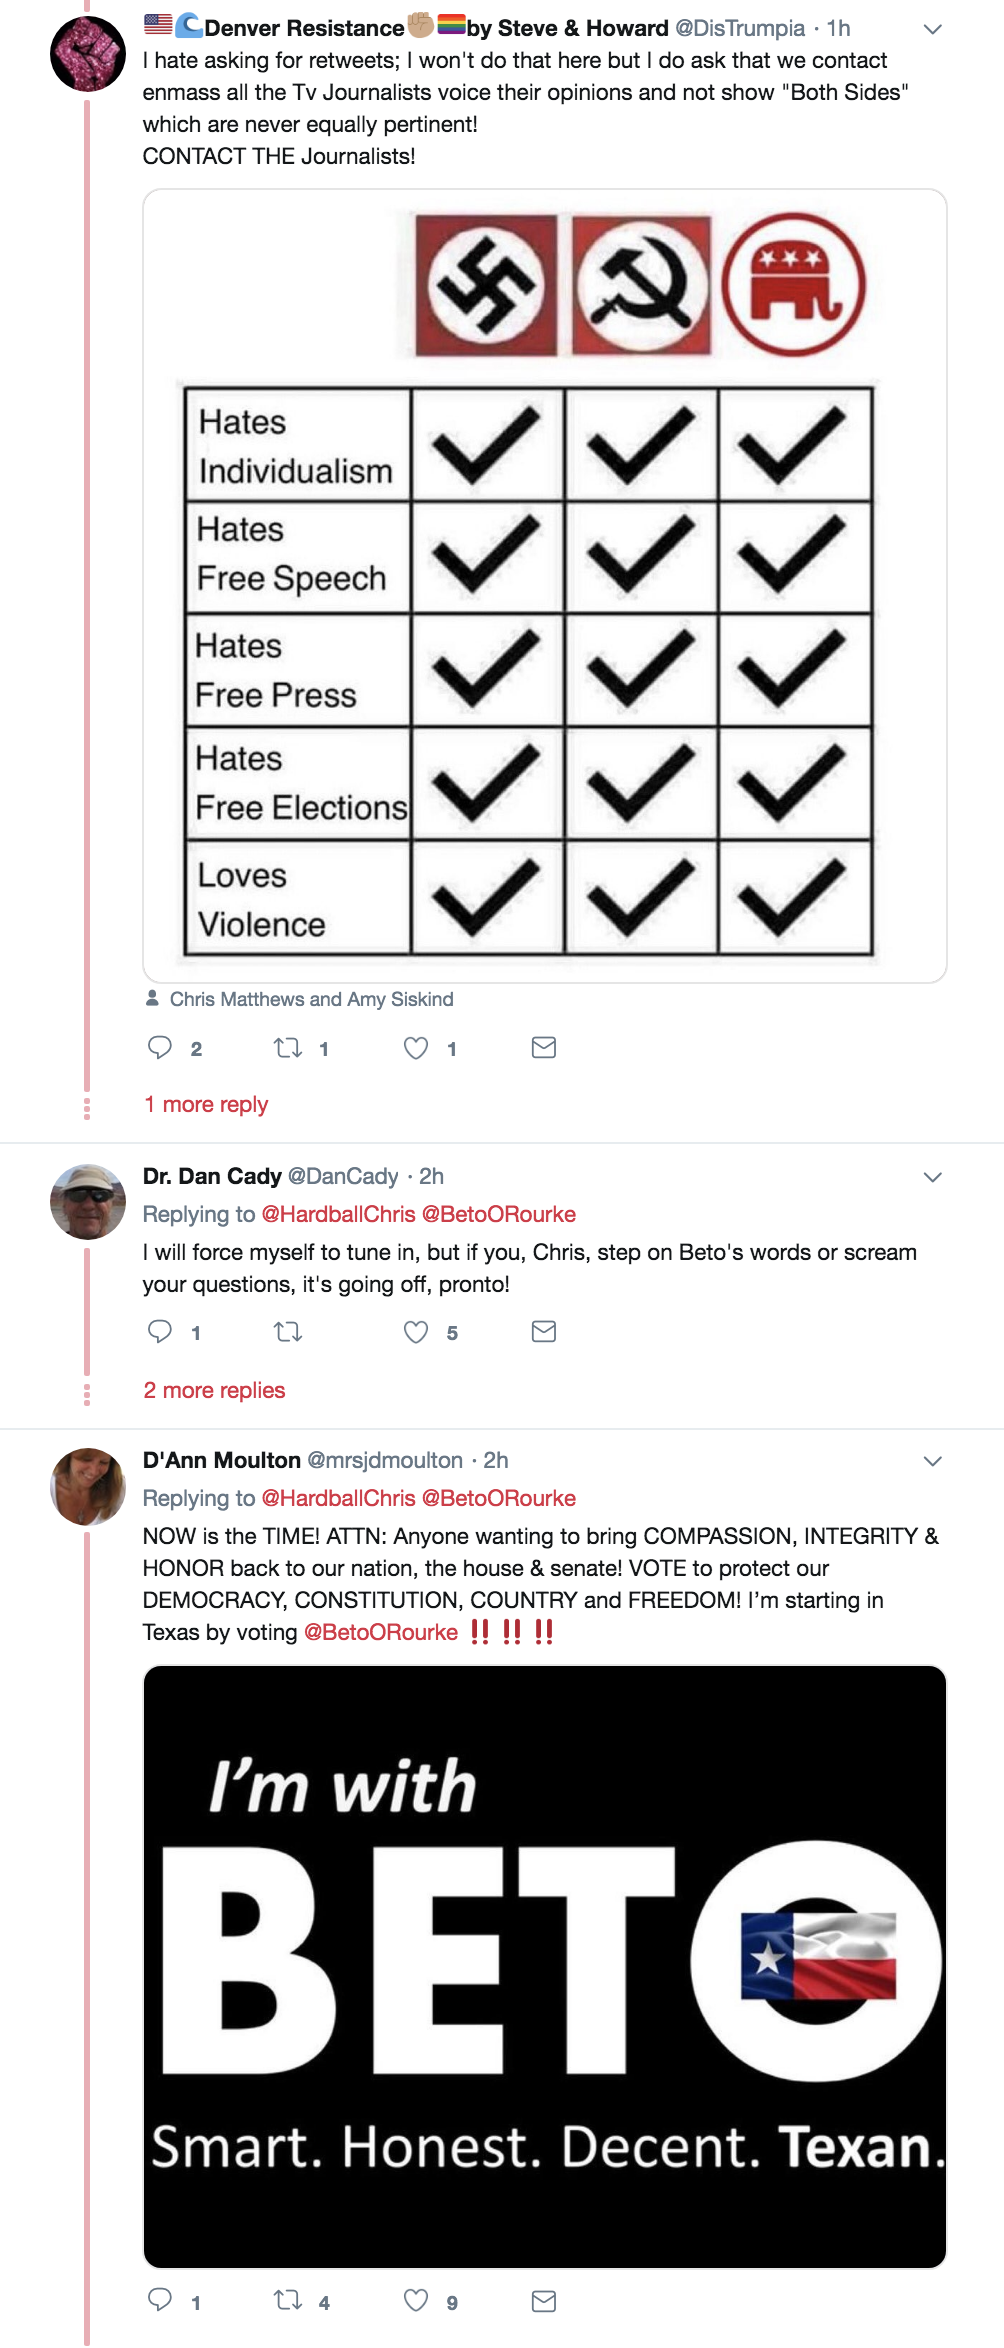 Screen-Shot-2018-10-30-at-1.11.02-PM O'Rourke Voters Under 30 Just Had A Turnout That Could Change Election Results Donald Trump Election 2018 Politics Top Stories